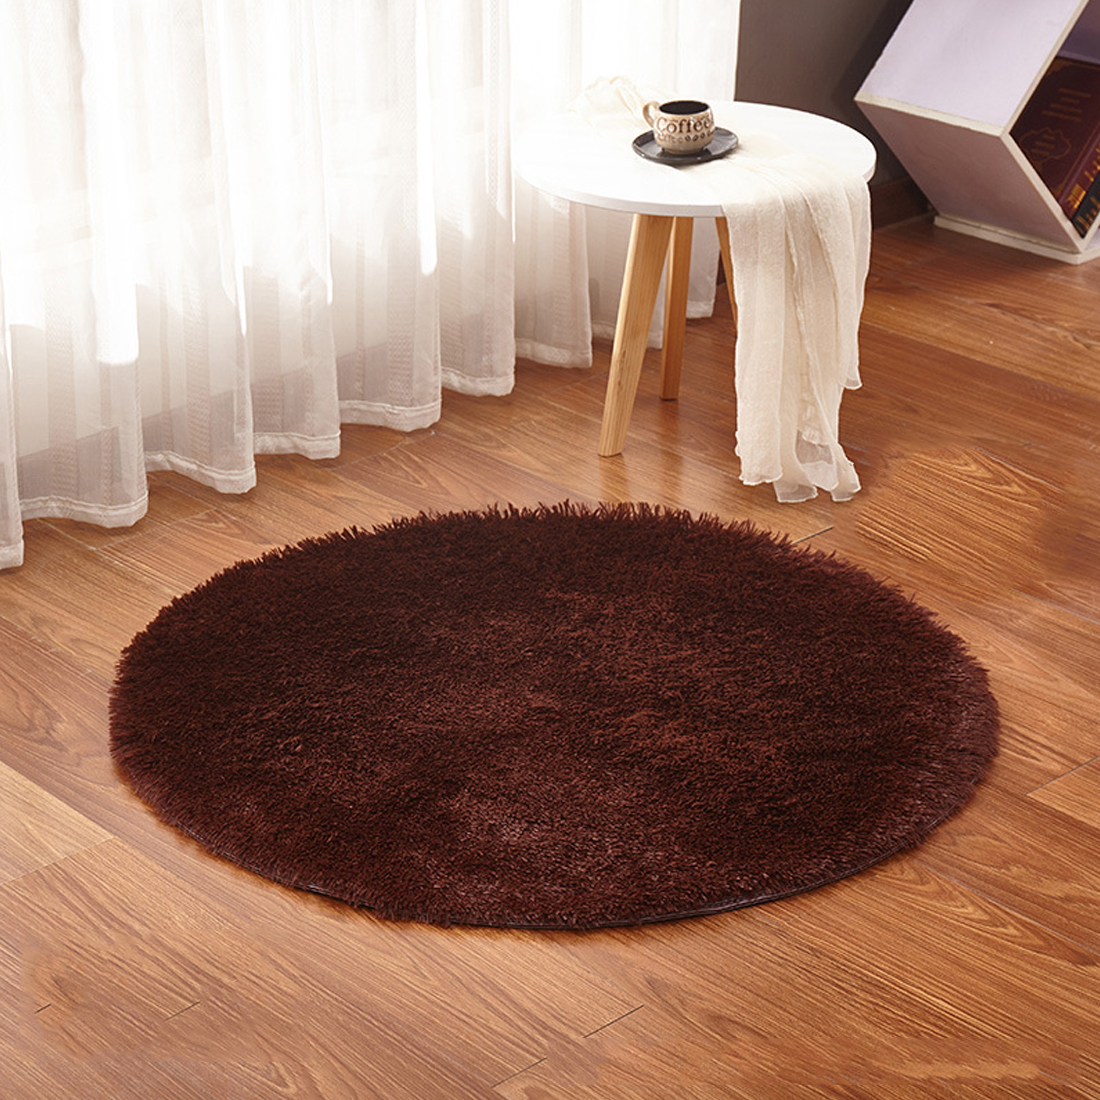 Aliexpress Com Buy Fluffy Round Rug Carpet For Living